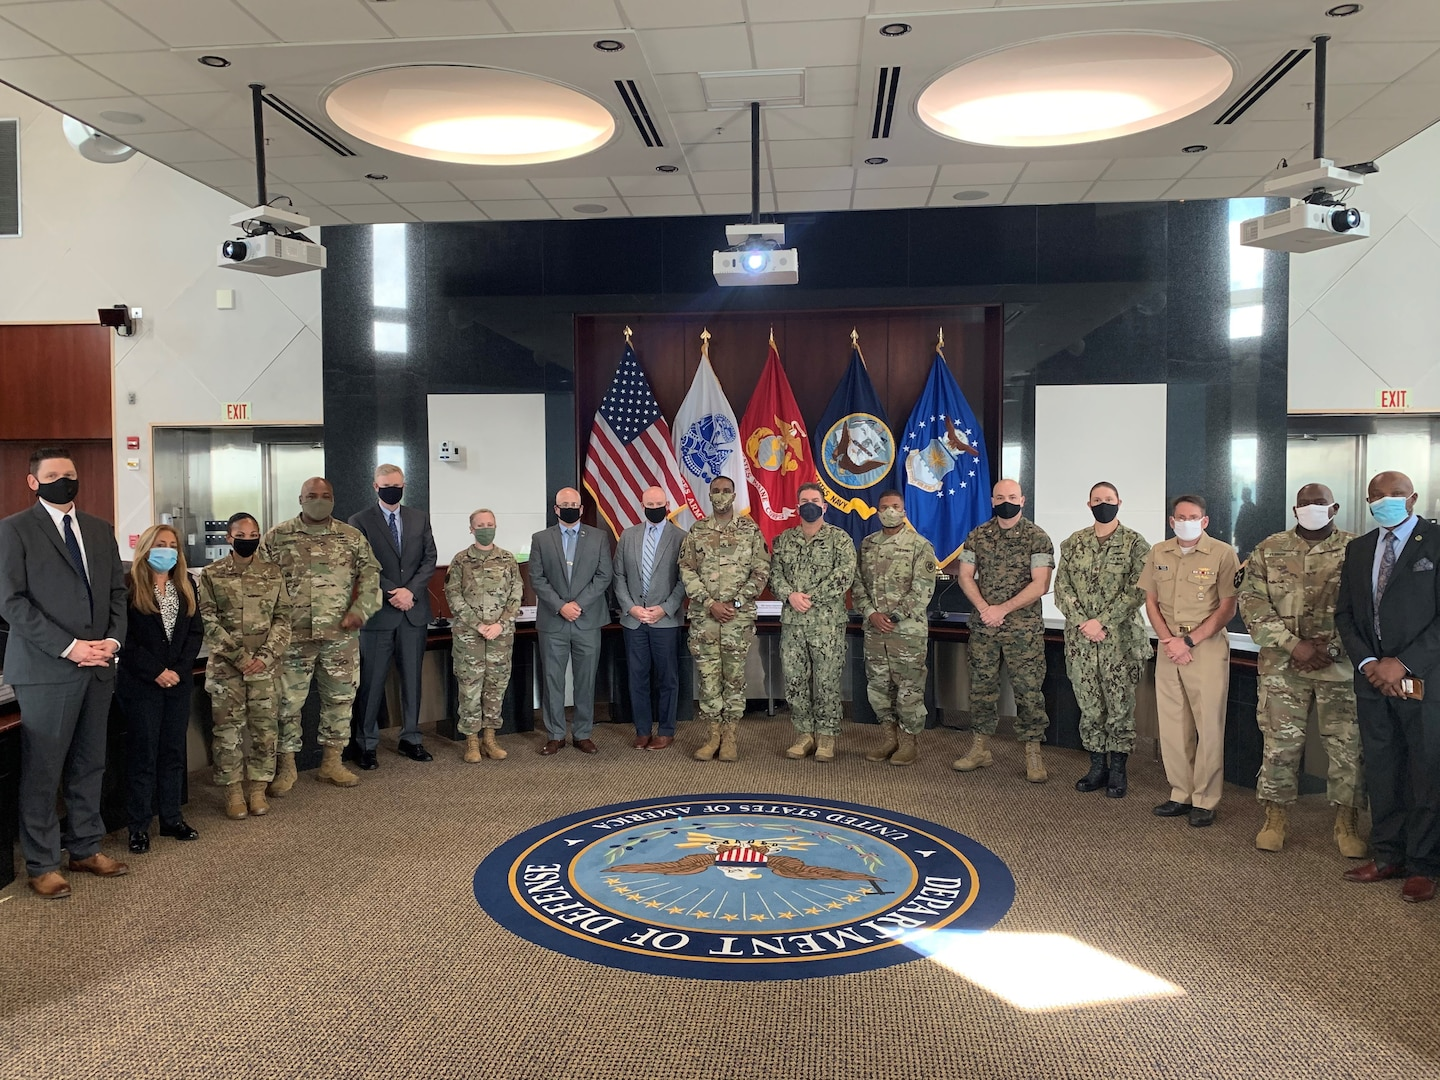 A group of military and civilian workers stand in a conference room.